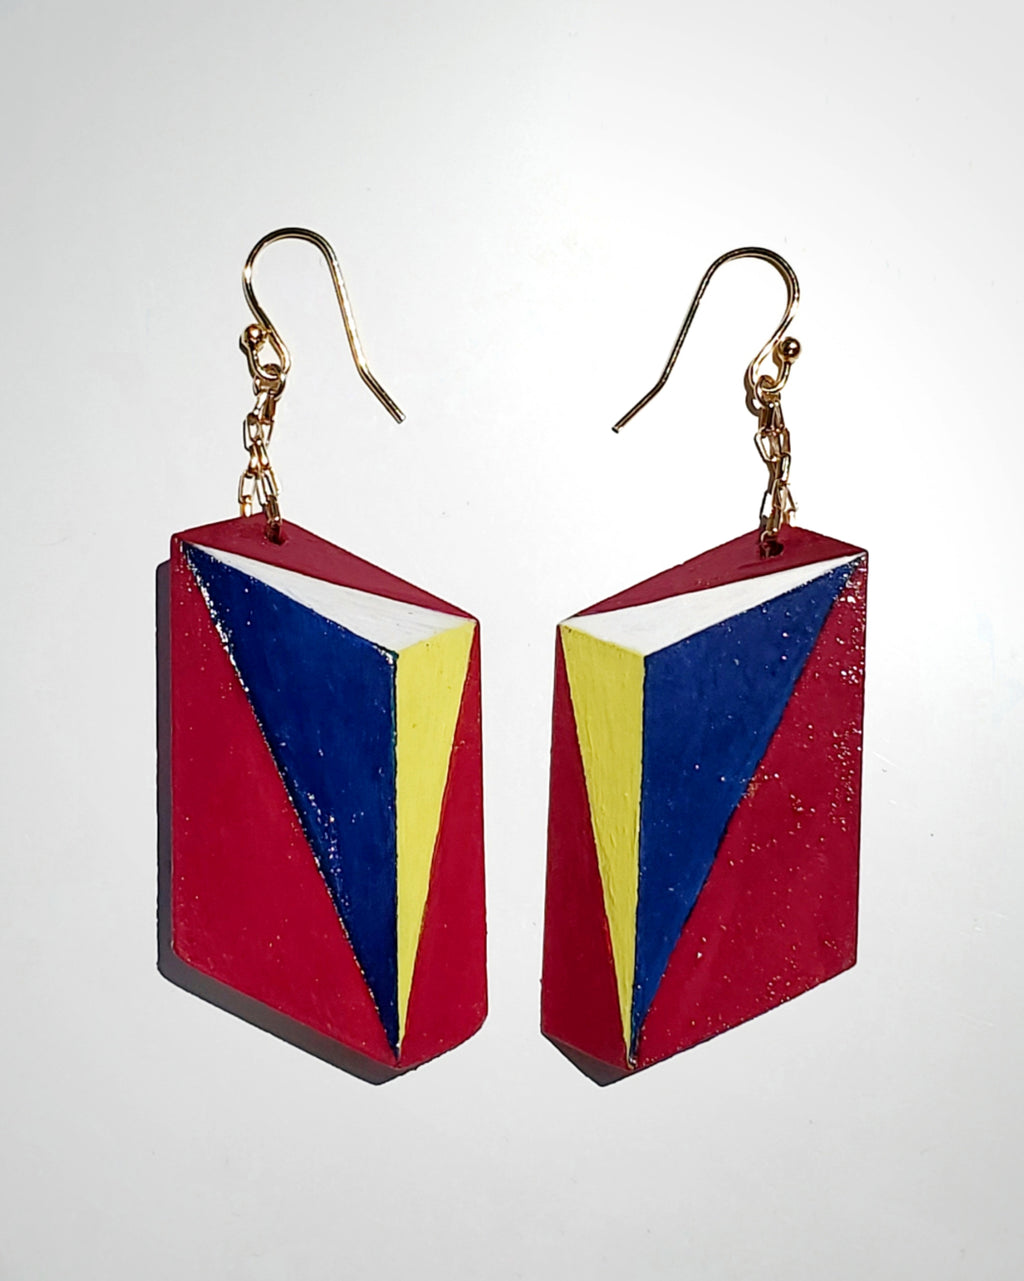 RBYW Earrings by Ma Nong